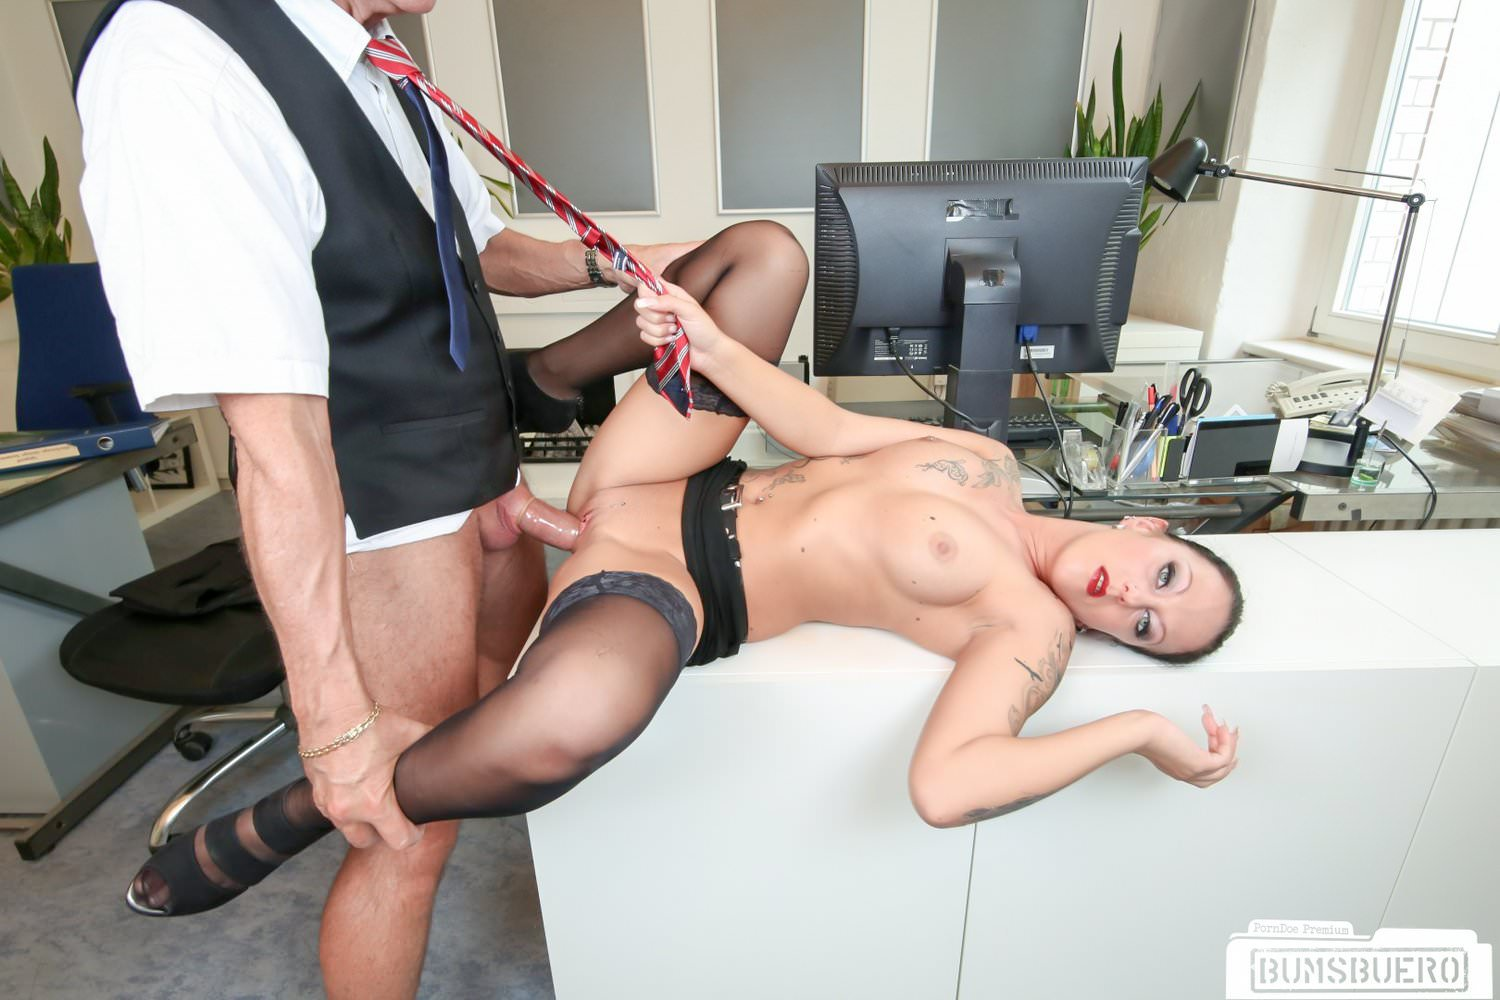 German Milf at Office - hotcams365&period